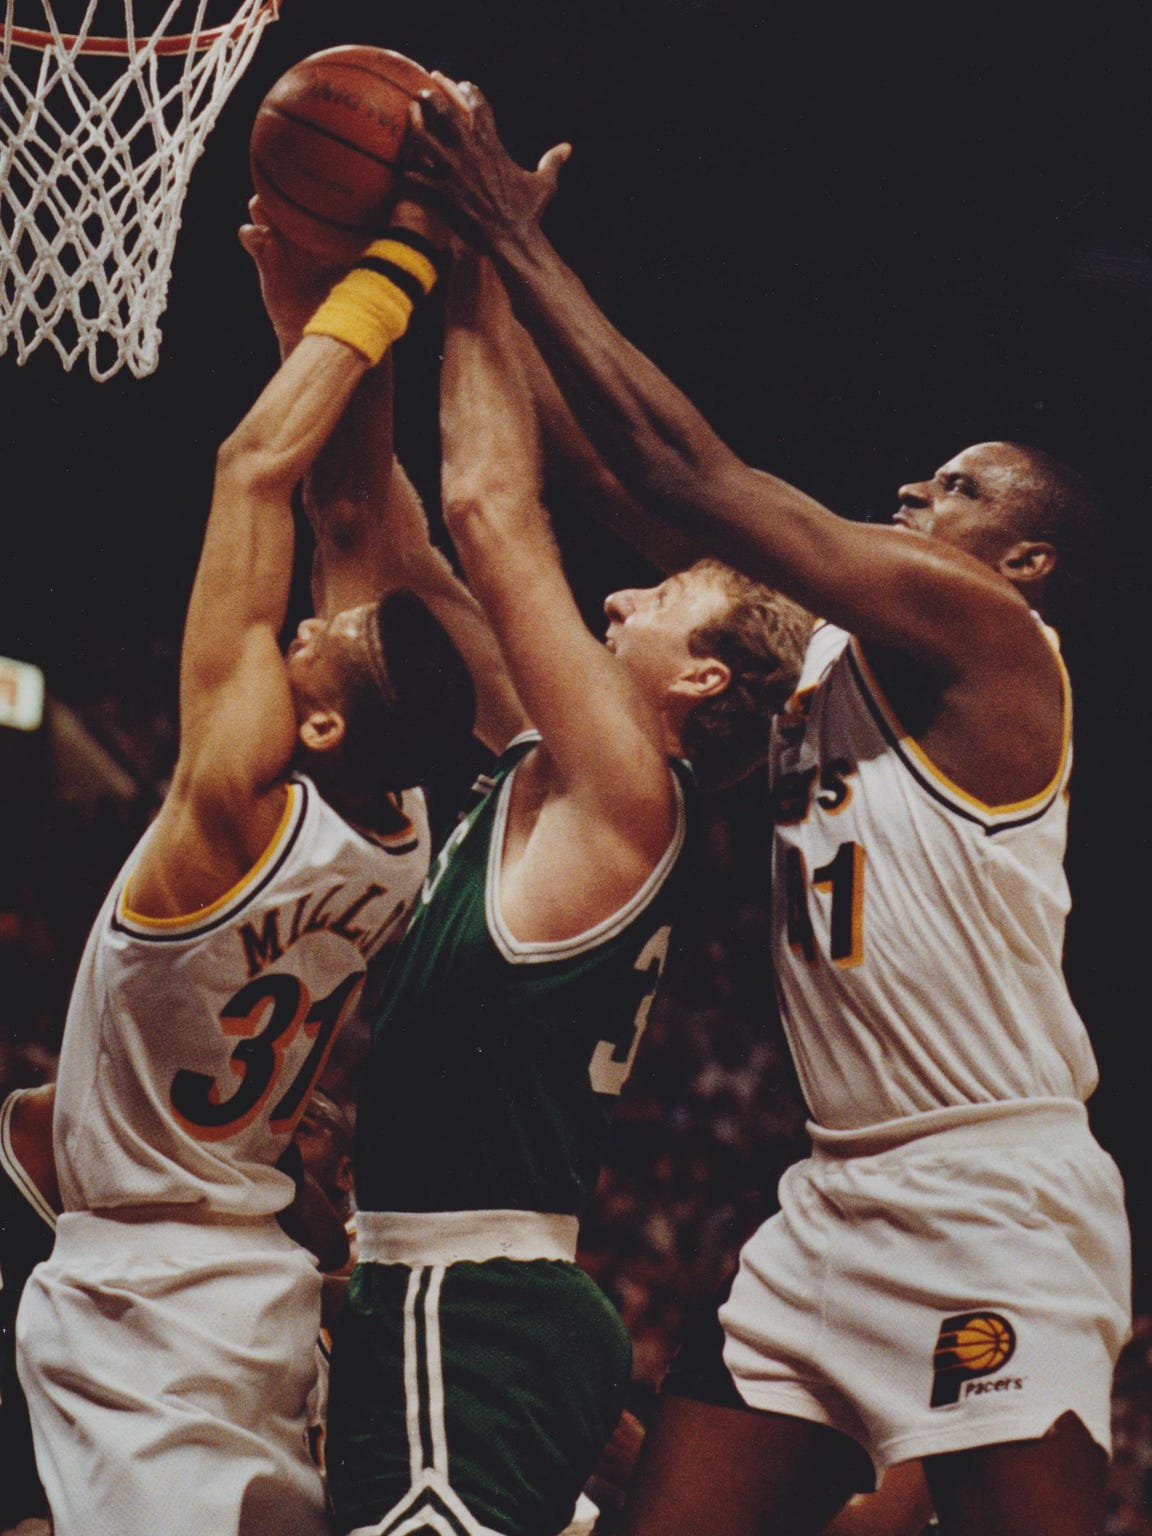 Larry Bird, middle, battles Reggie Miller, left, and